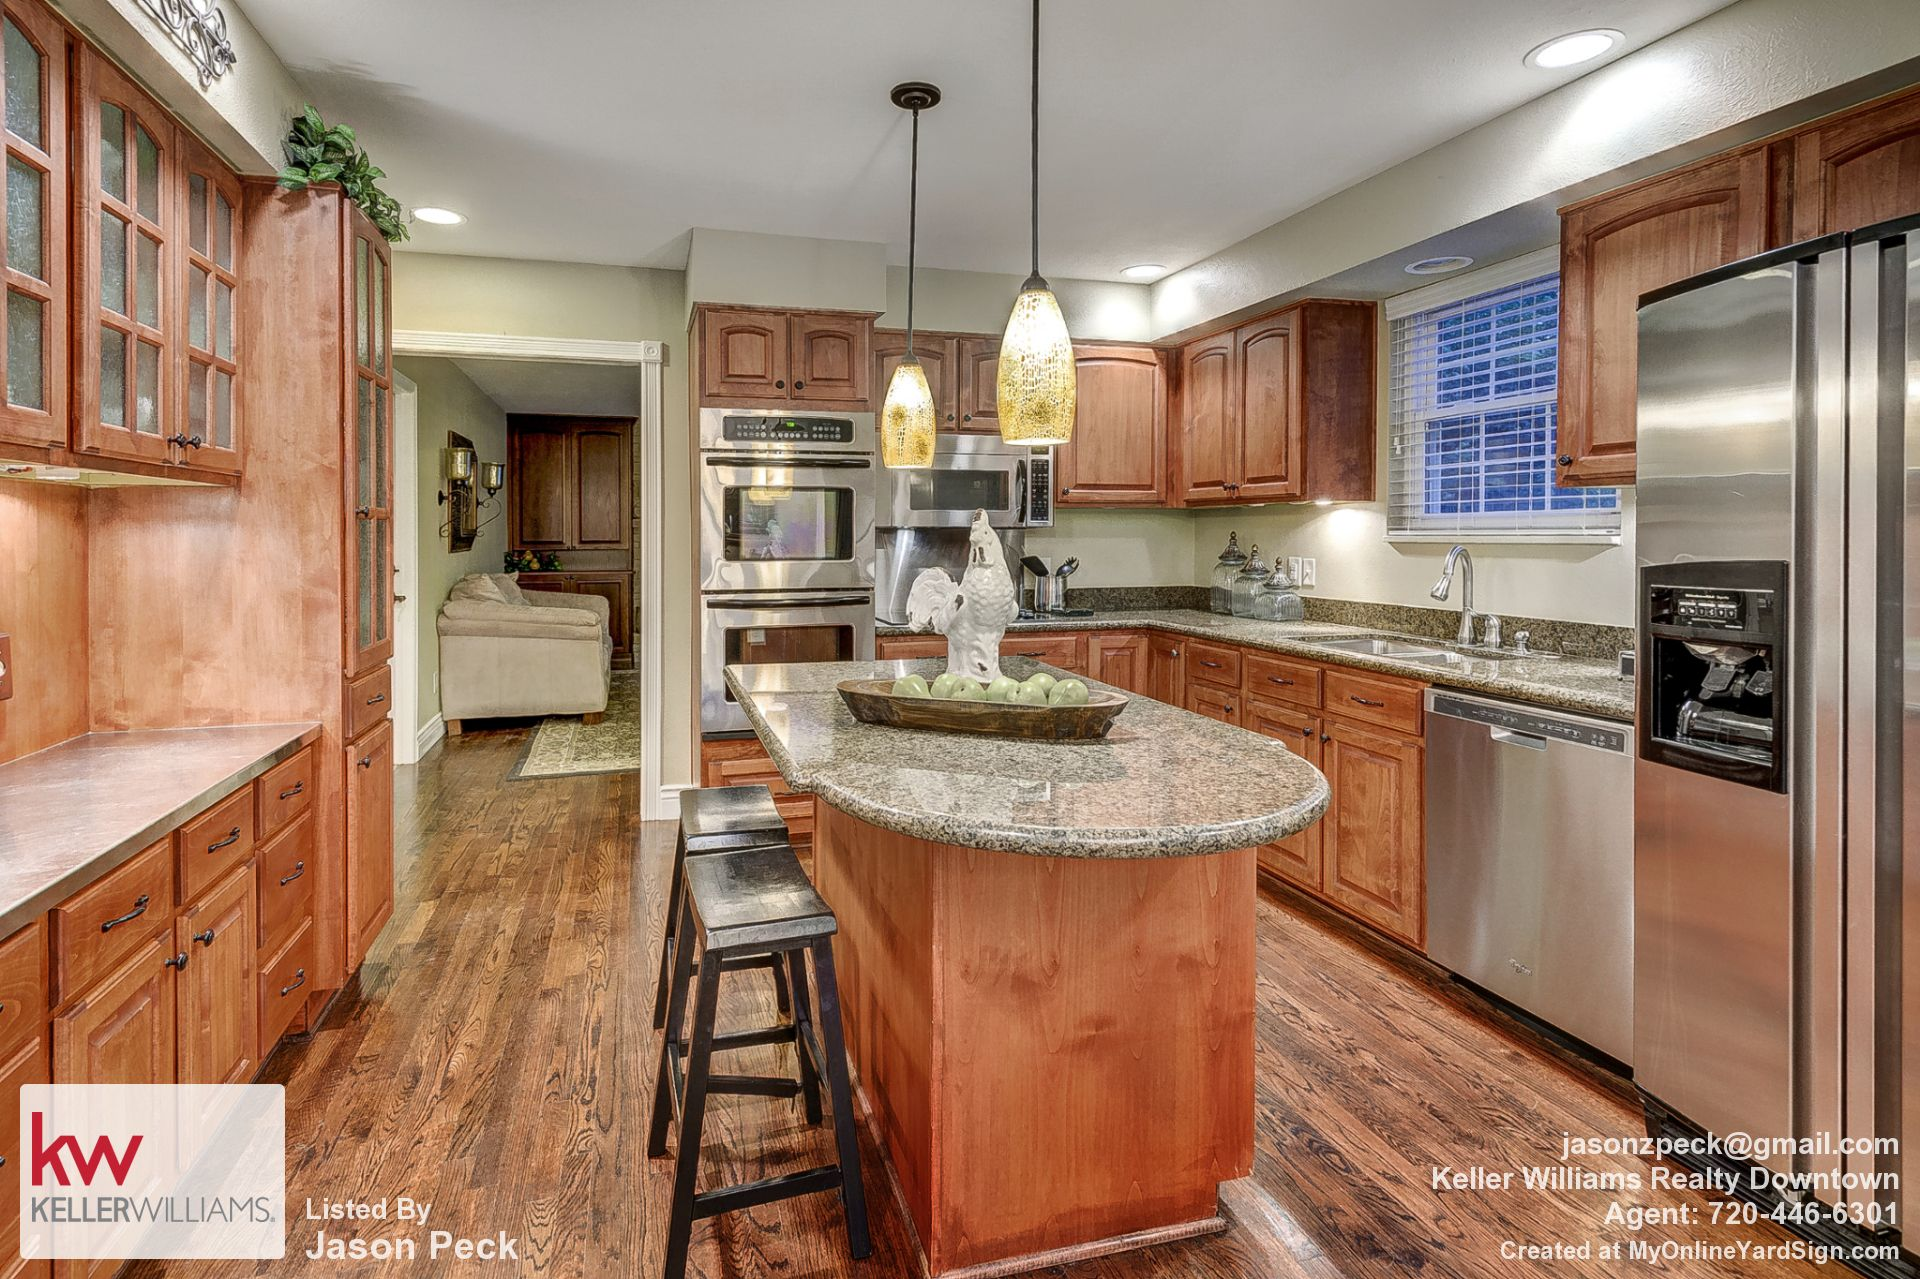 Remodeled Kitchen Top of the line appliances